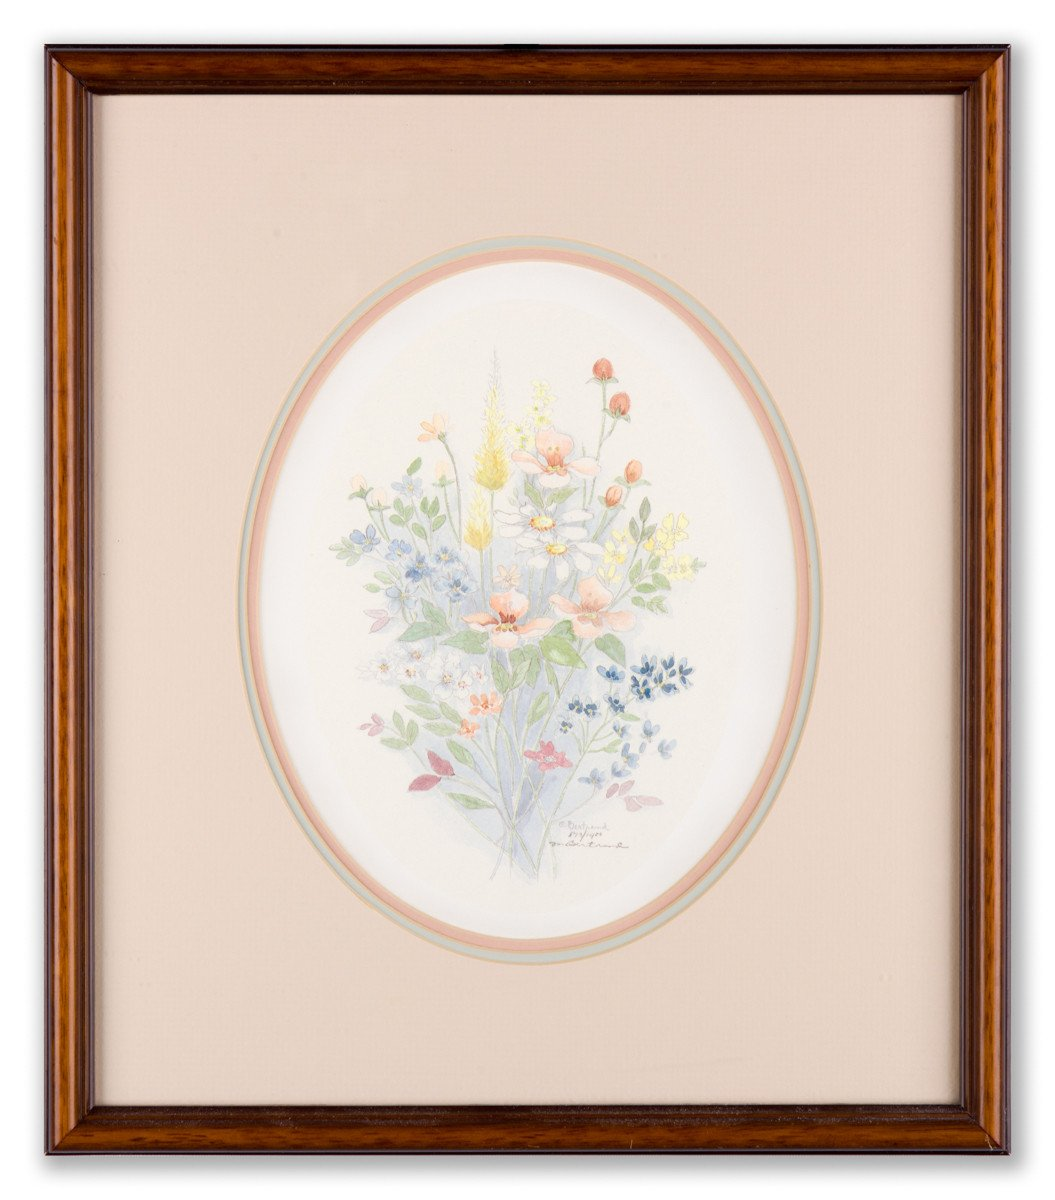 Flowers #2 by Mary Vincent Bertrand (signed lithograph) - Framed Art